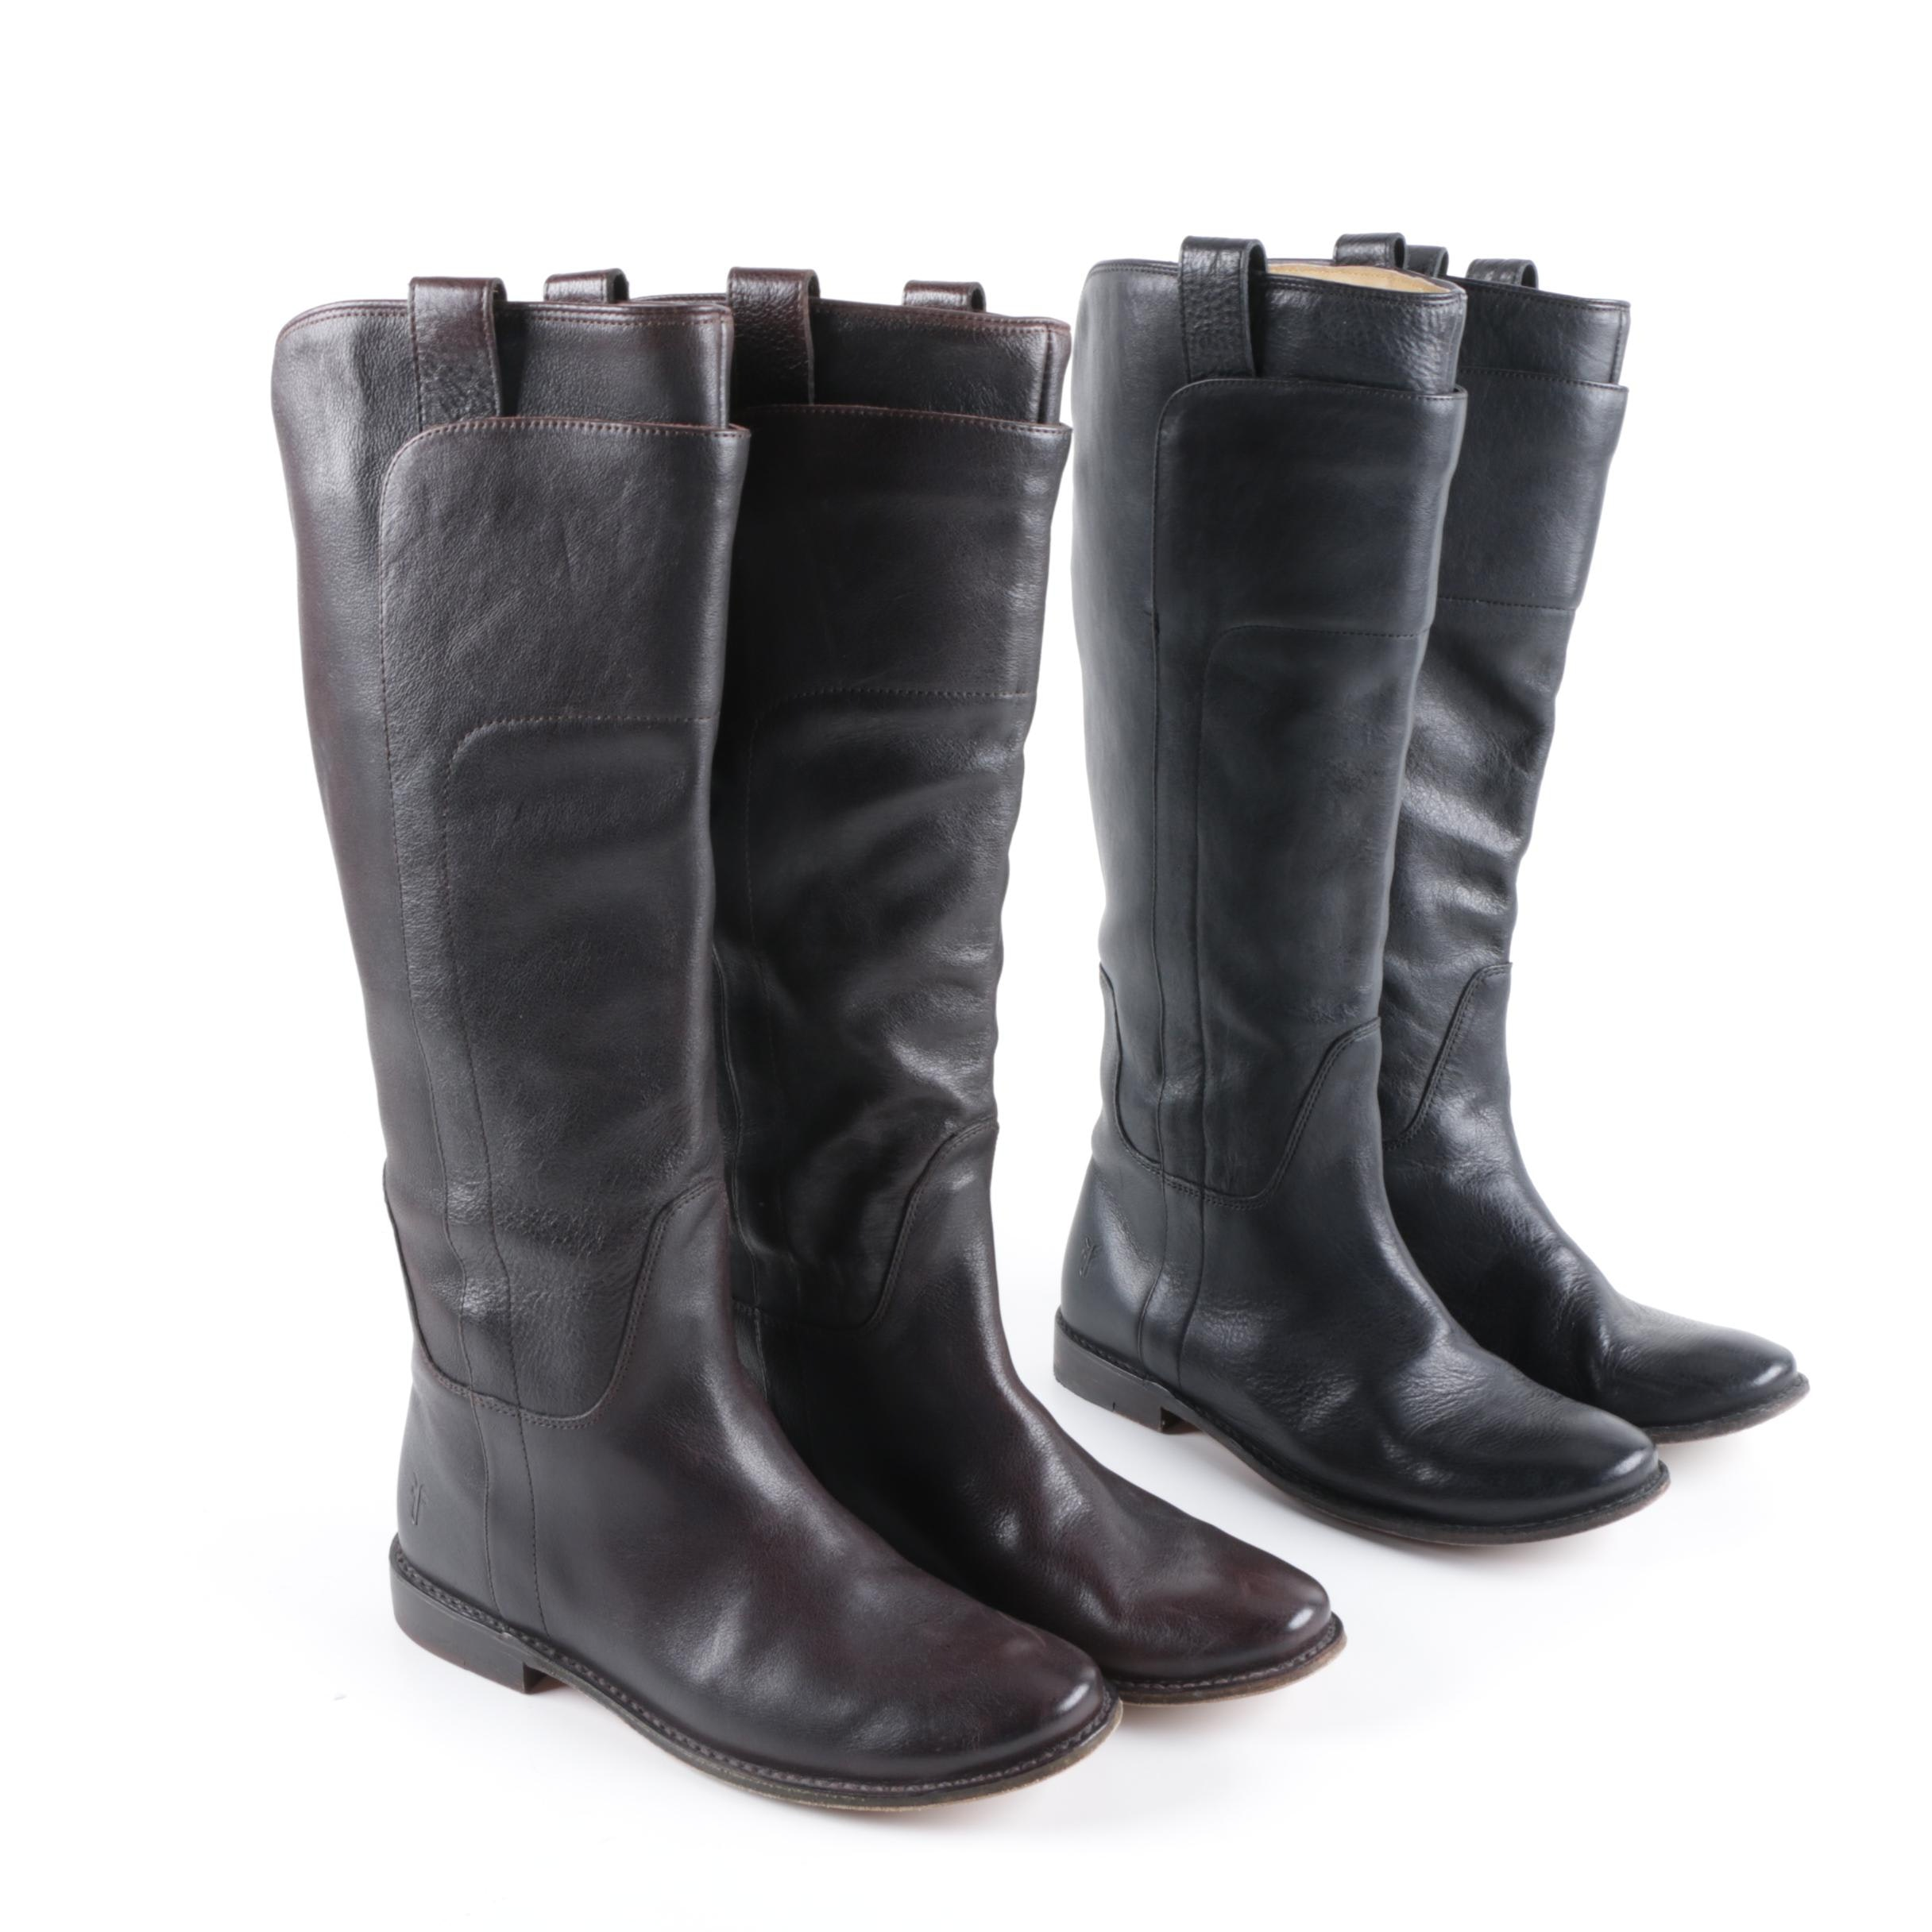 Women's Frye Paige Leather Riding Boots in Dark Brown and Black Leather